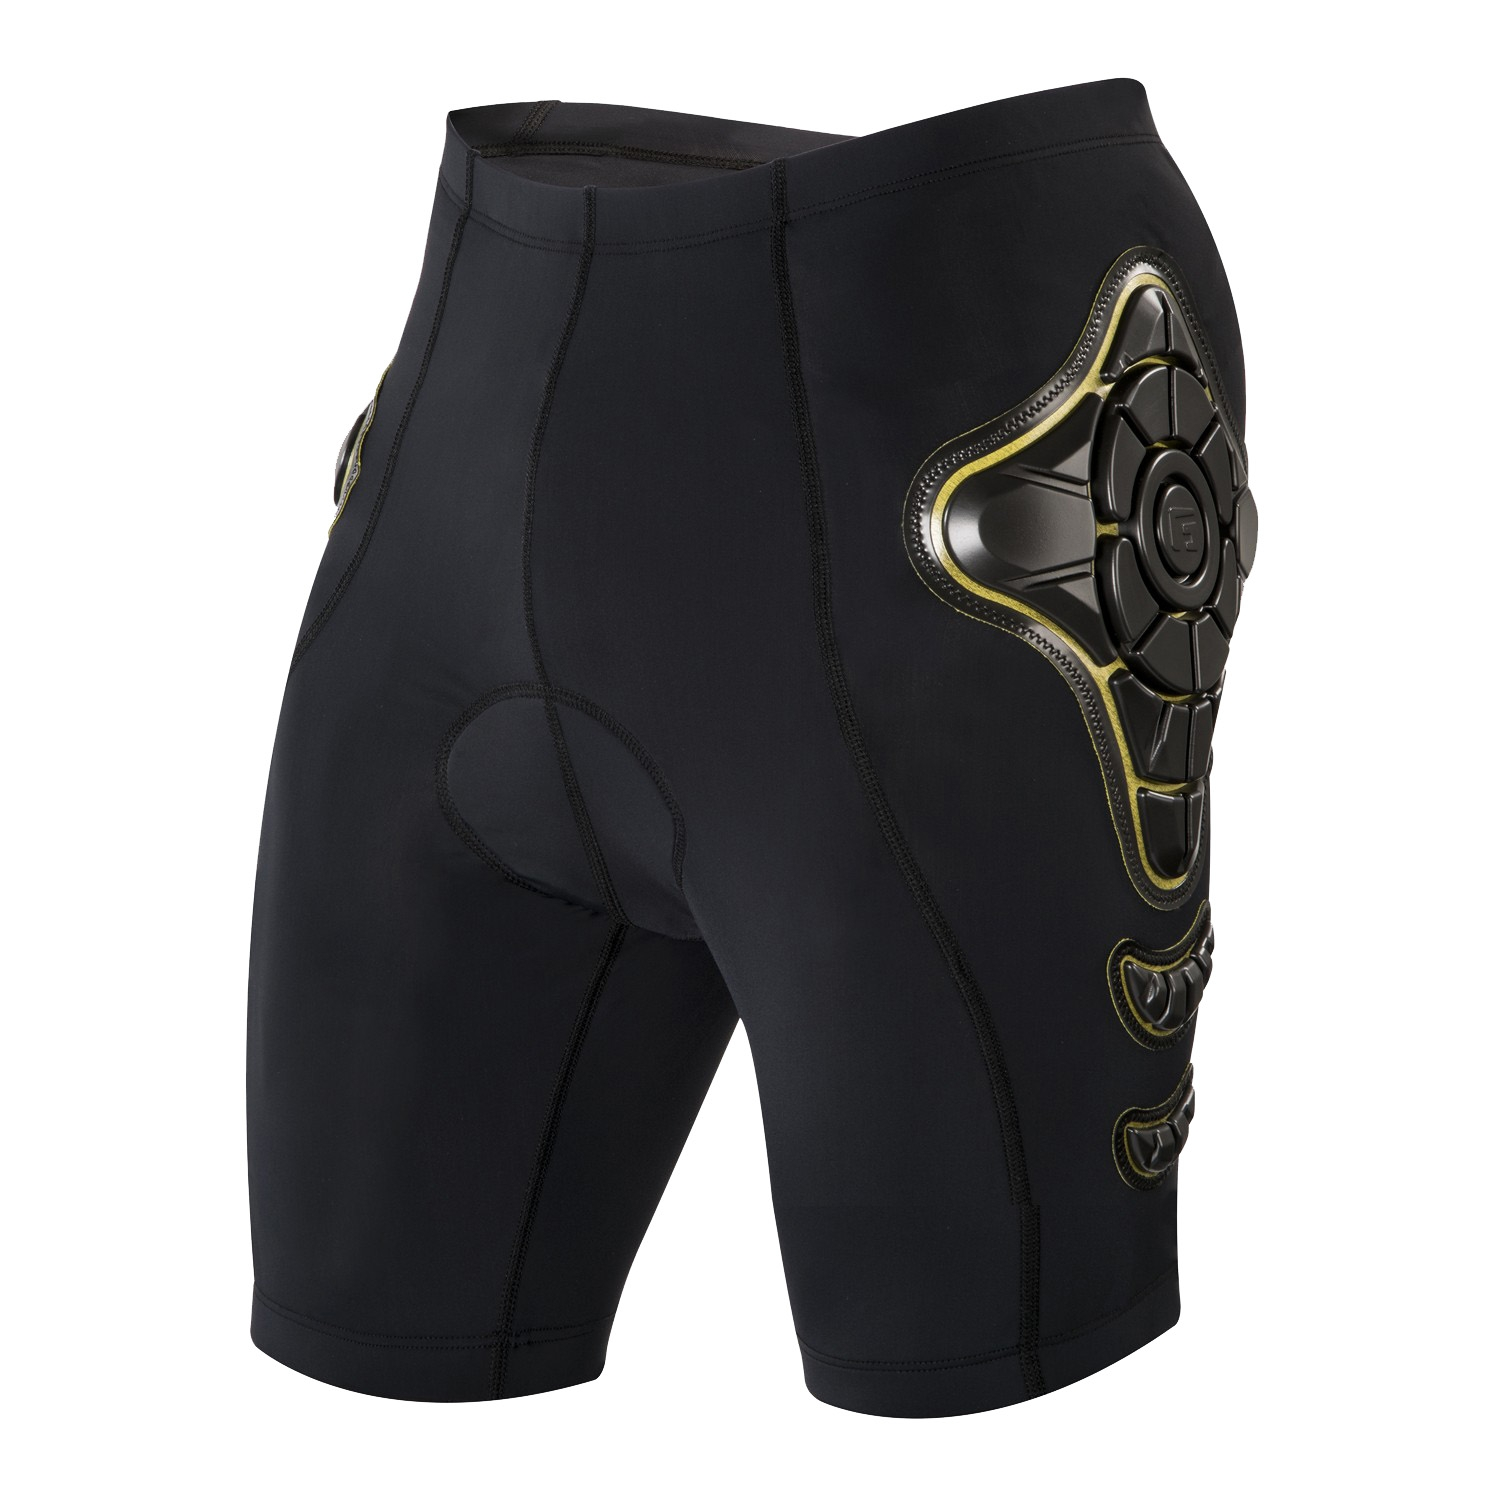 Short de protection G-Form Pro-B Noir/Jaune - S